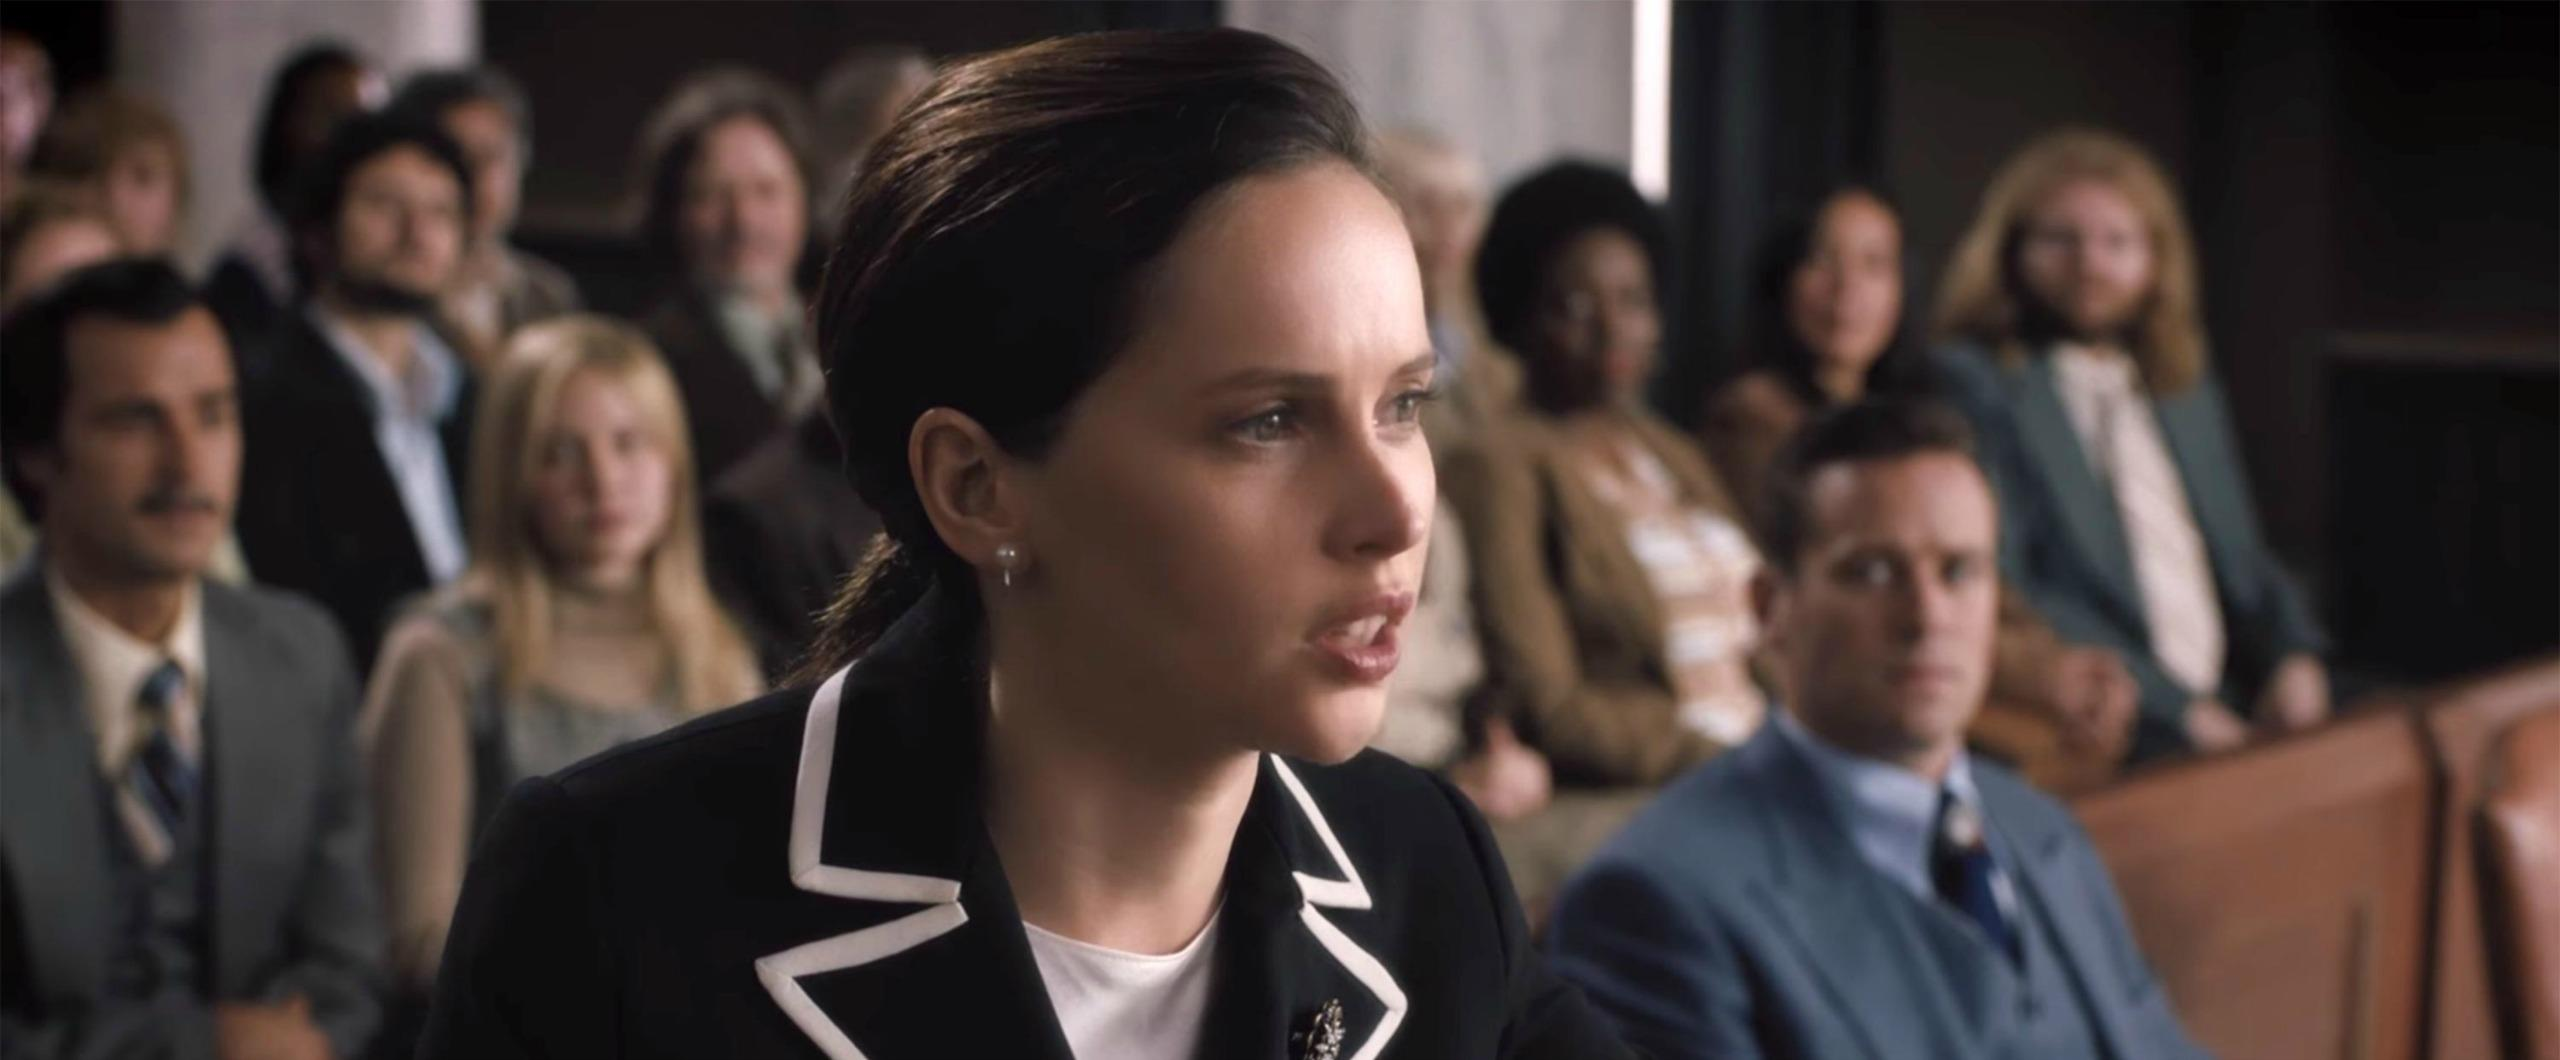 Felicity Jones, who played Ruth Bader Ginsburg in biopic, explains why Supreme Court Justice was a modern-day superhero